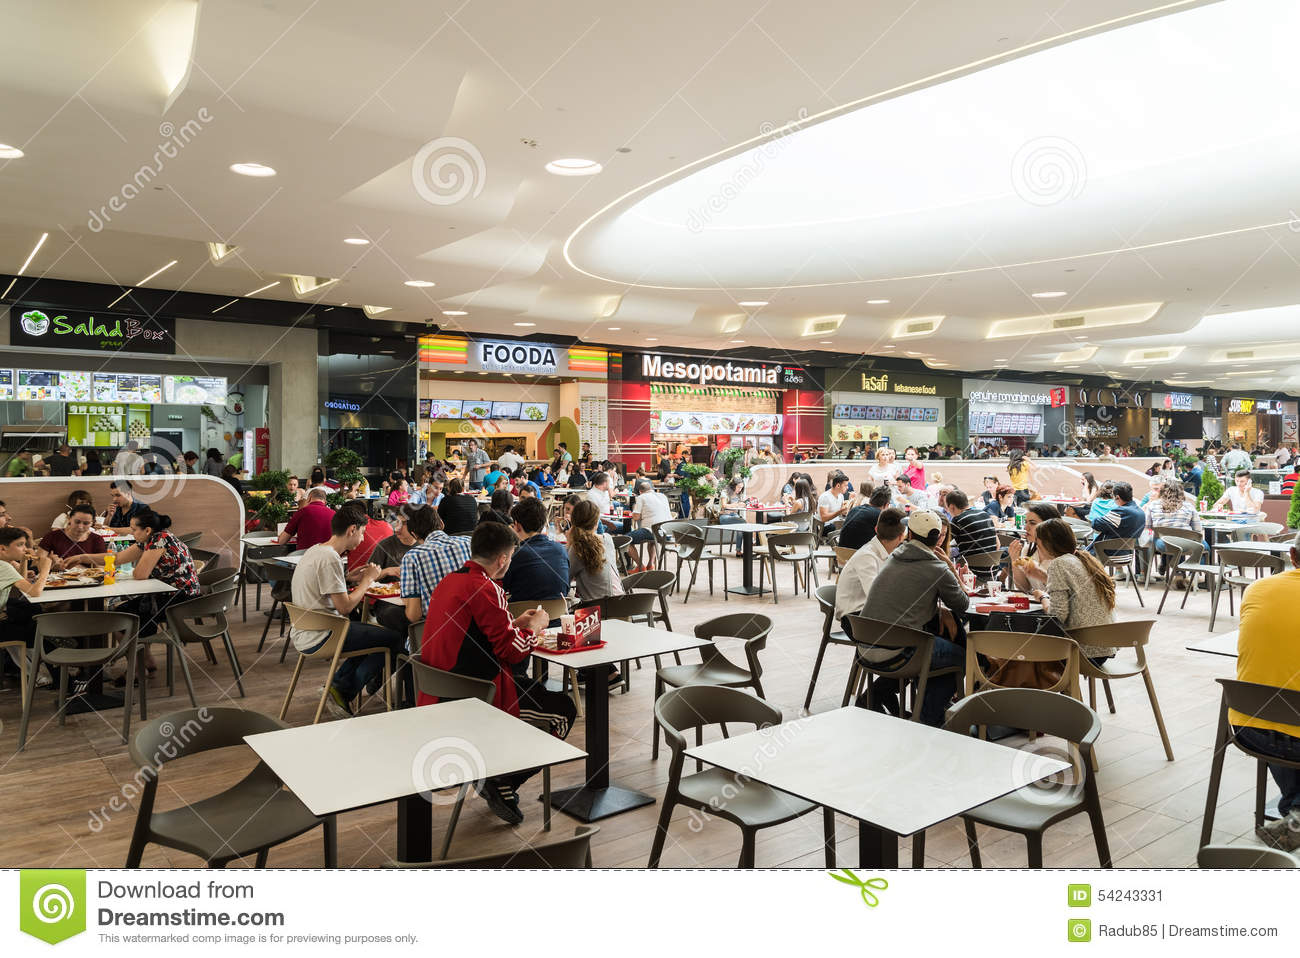 Eating in mall images usseek